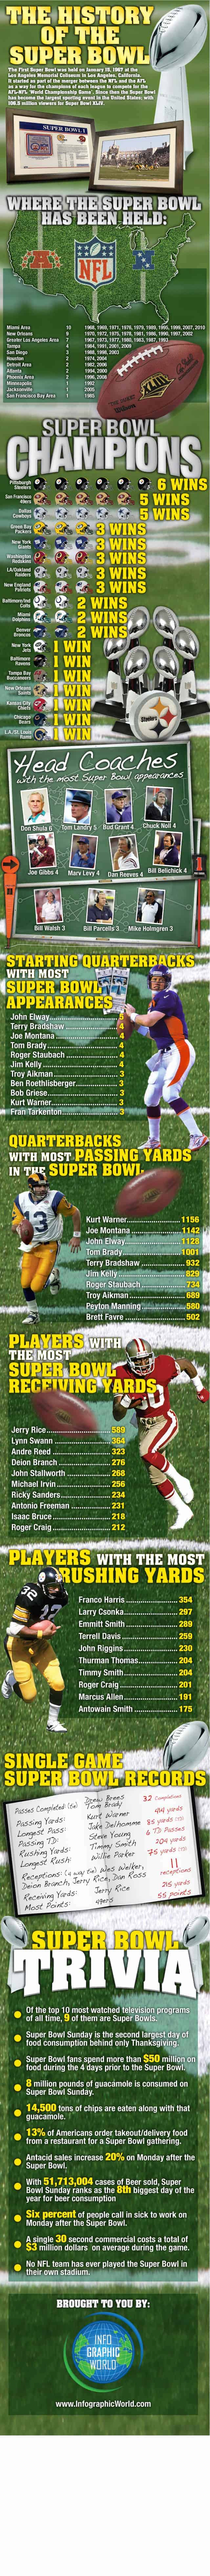 History of the Super Bowl Infographic